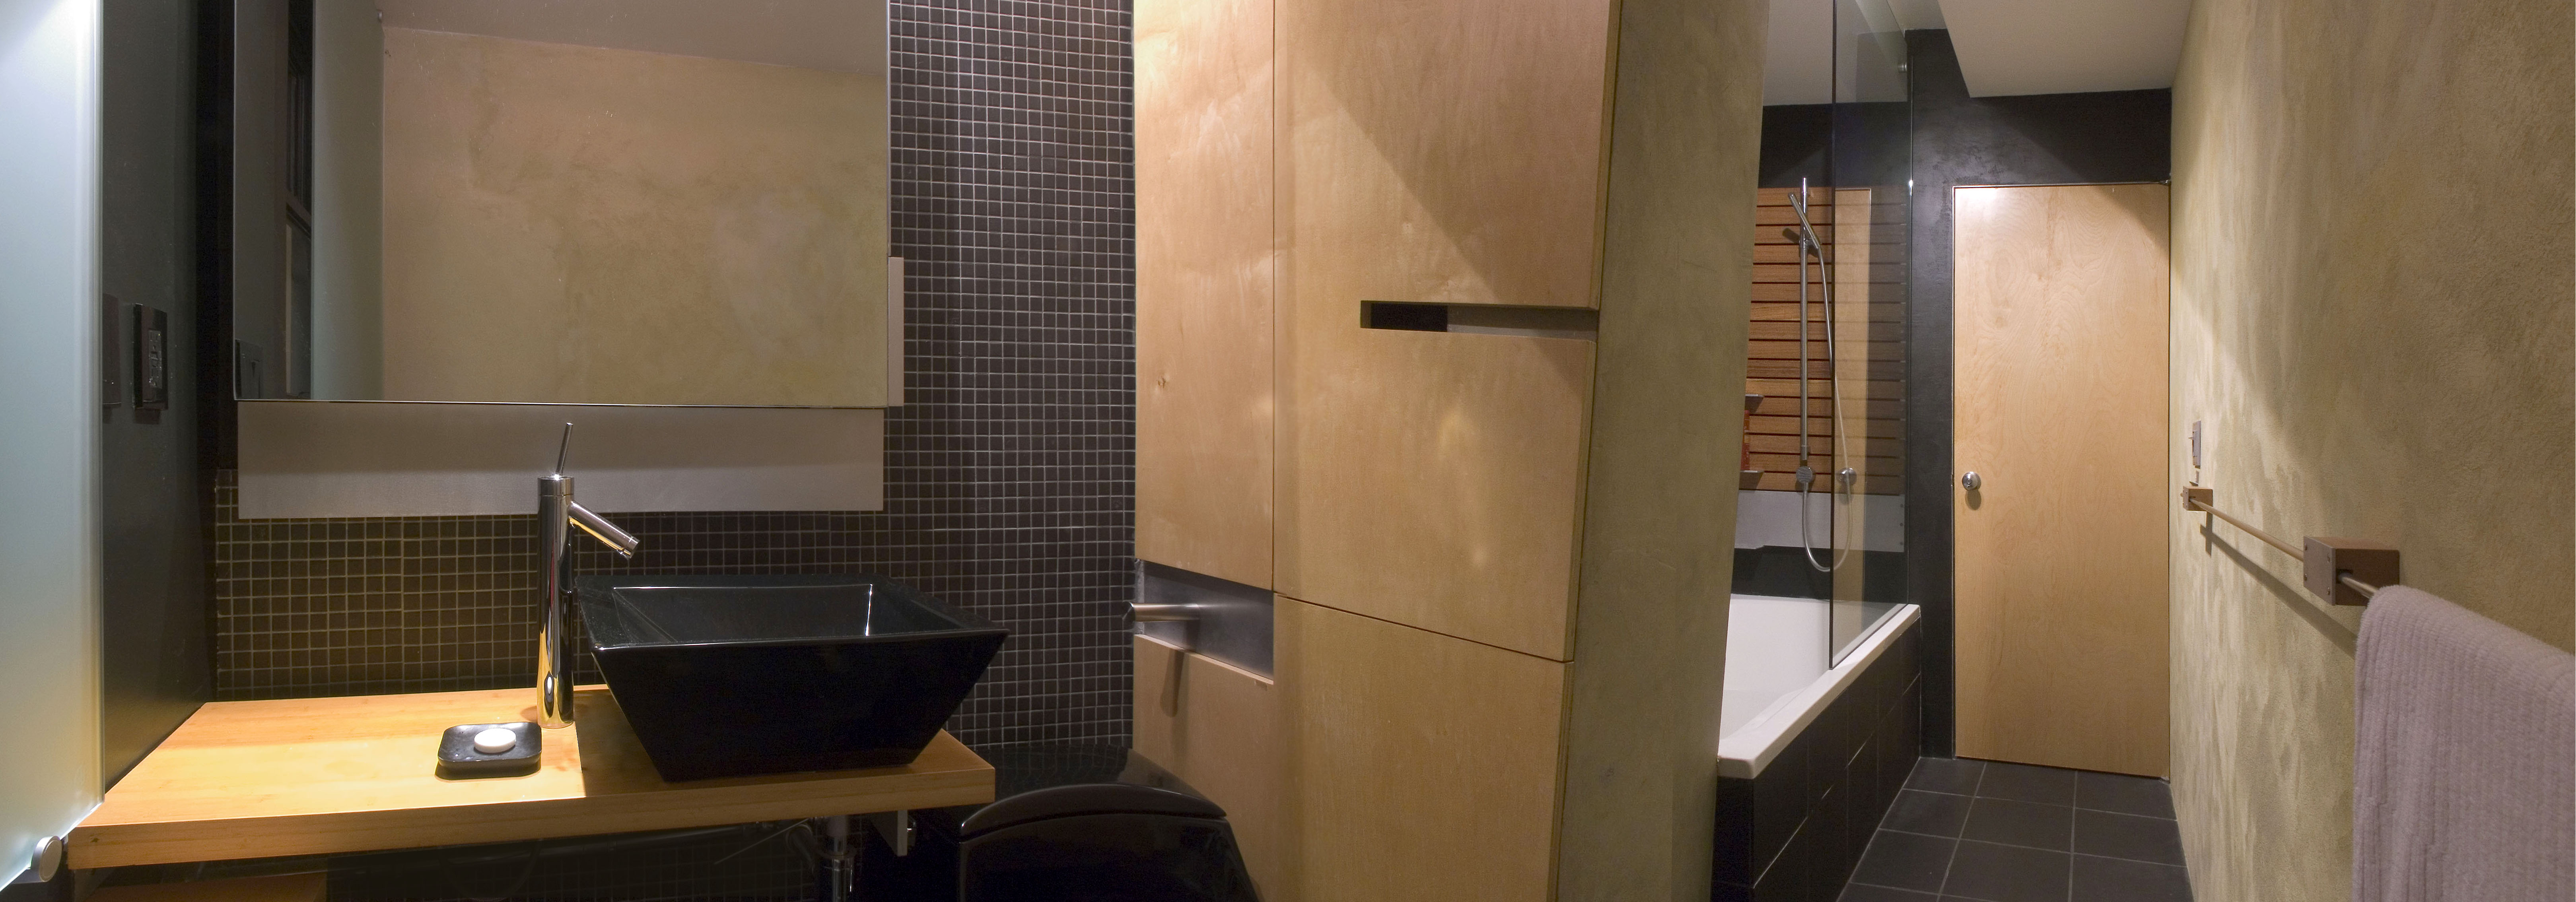 bathroom panorama_01